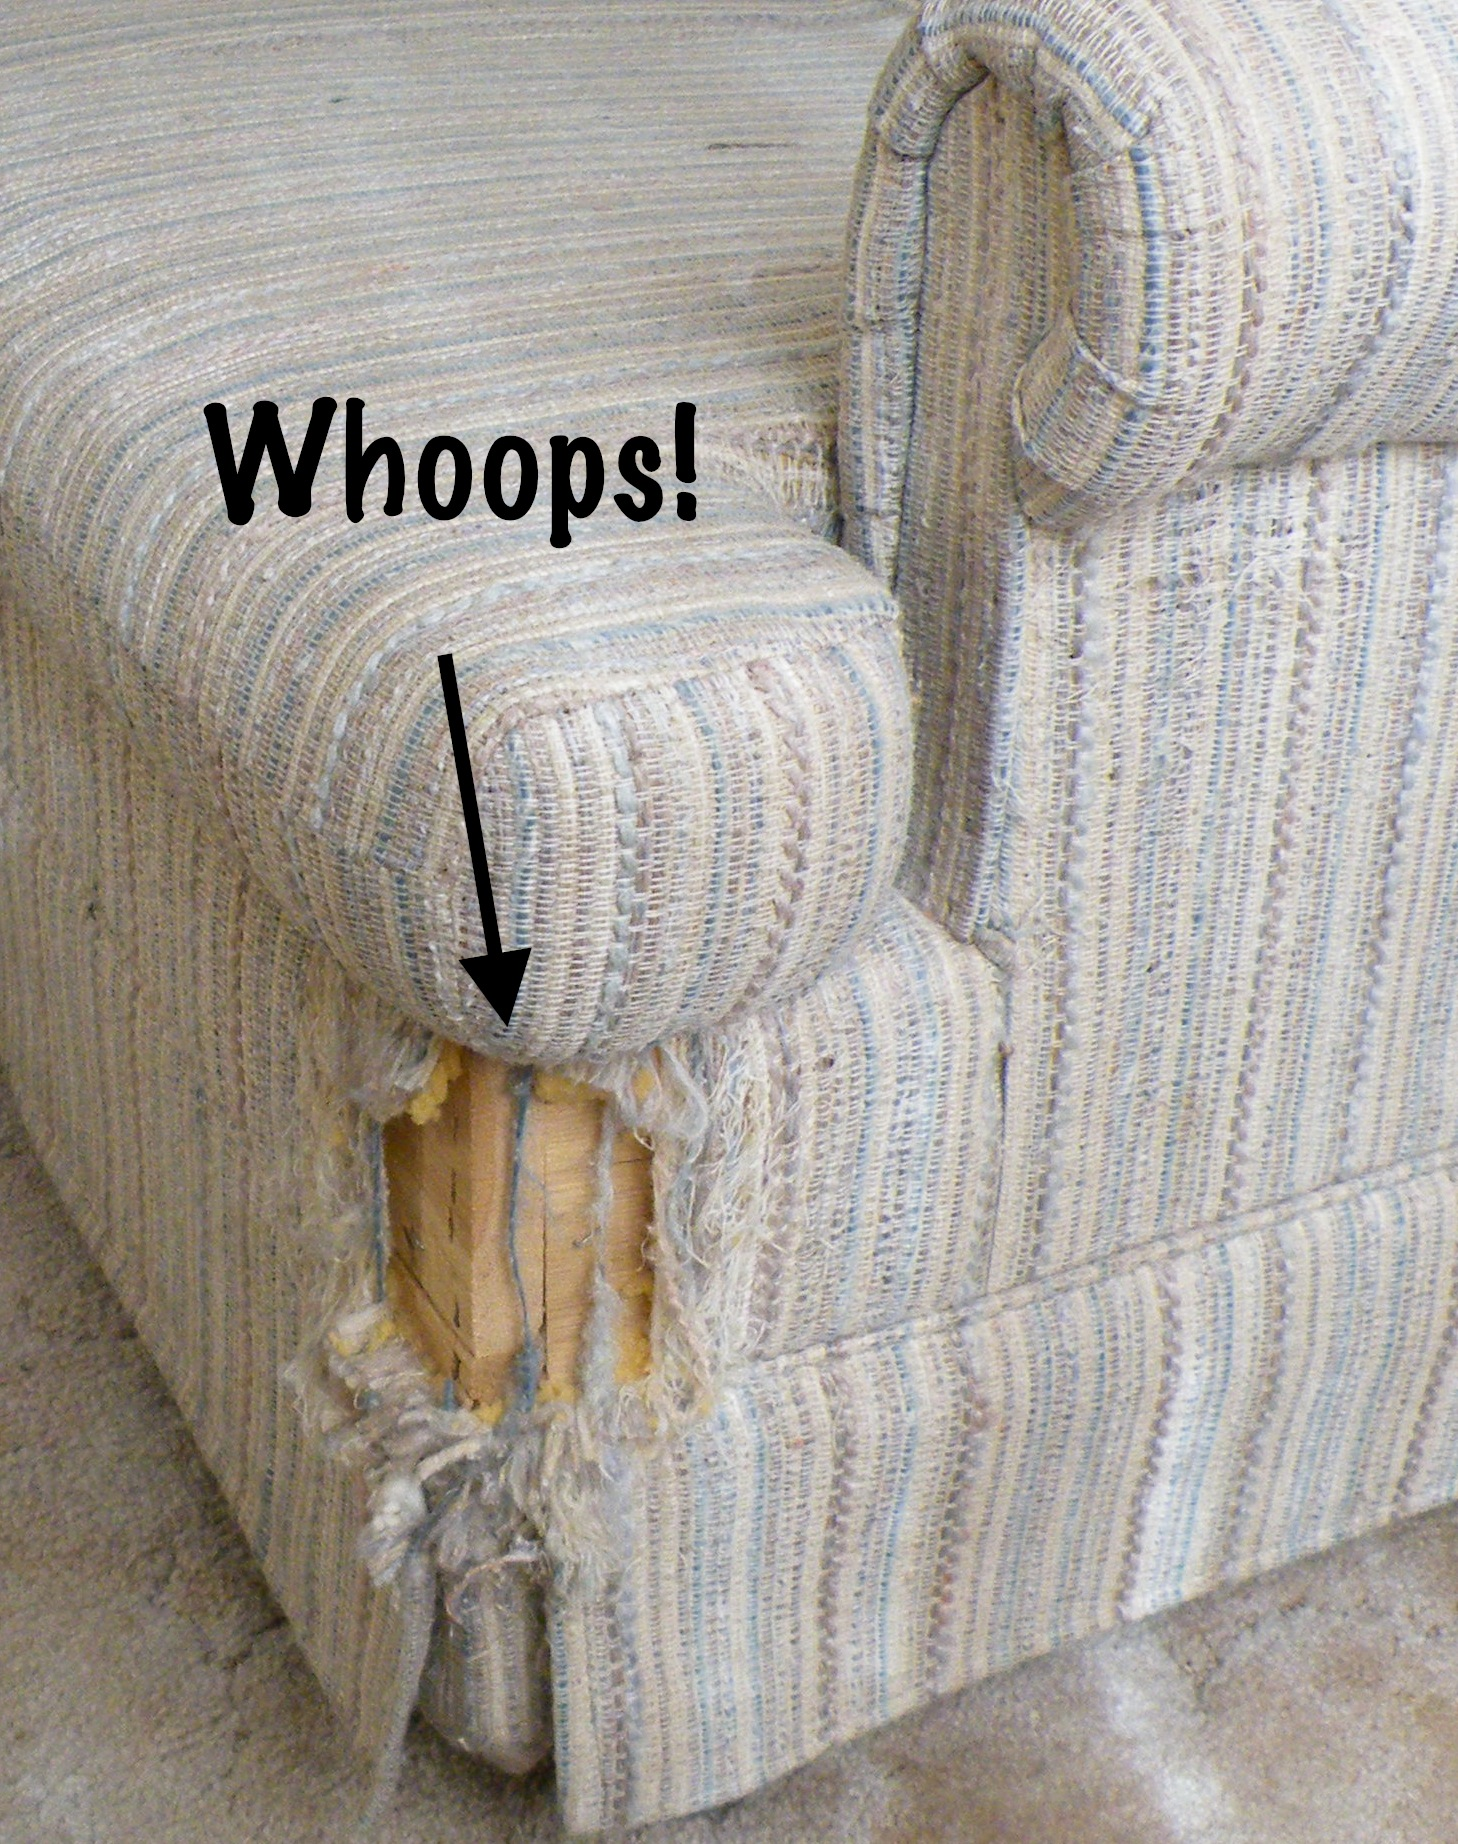 How To Keep Cats From Scratching Furniture Smart Behaviorists Have